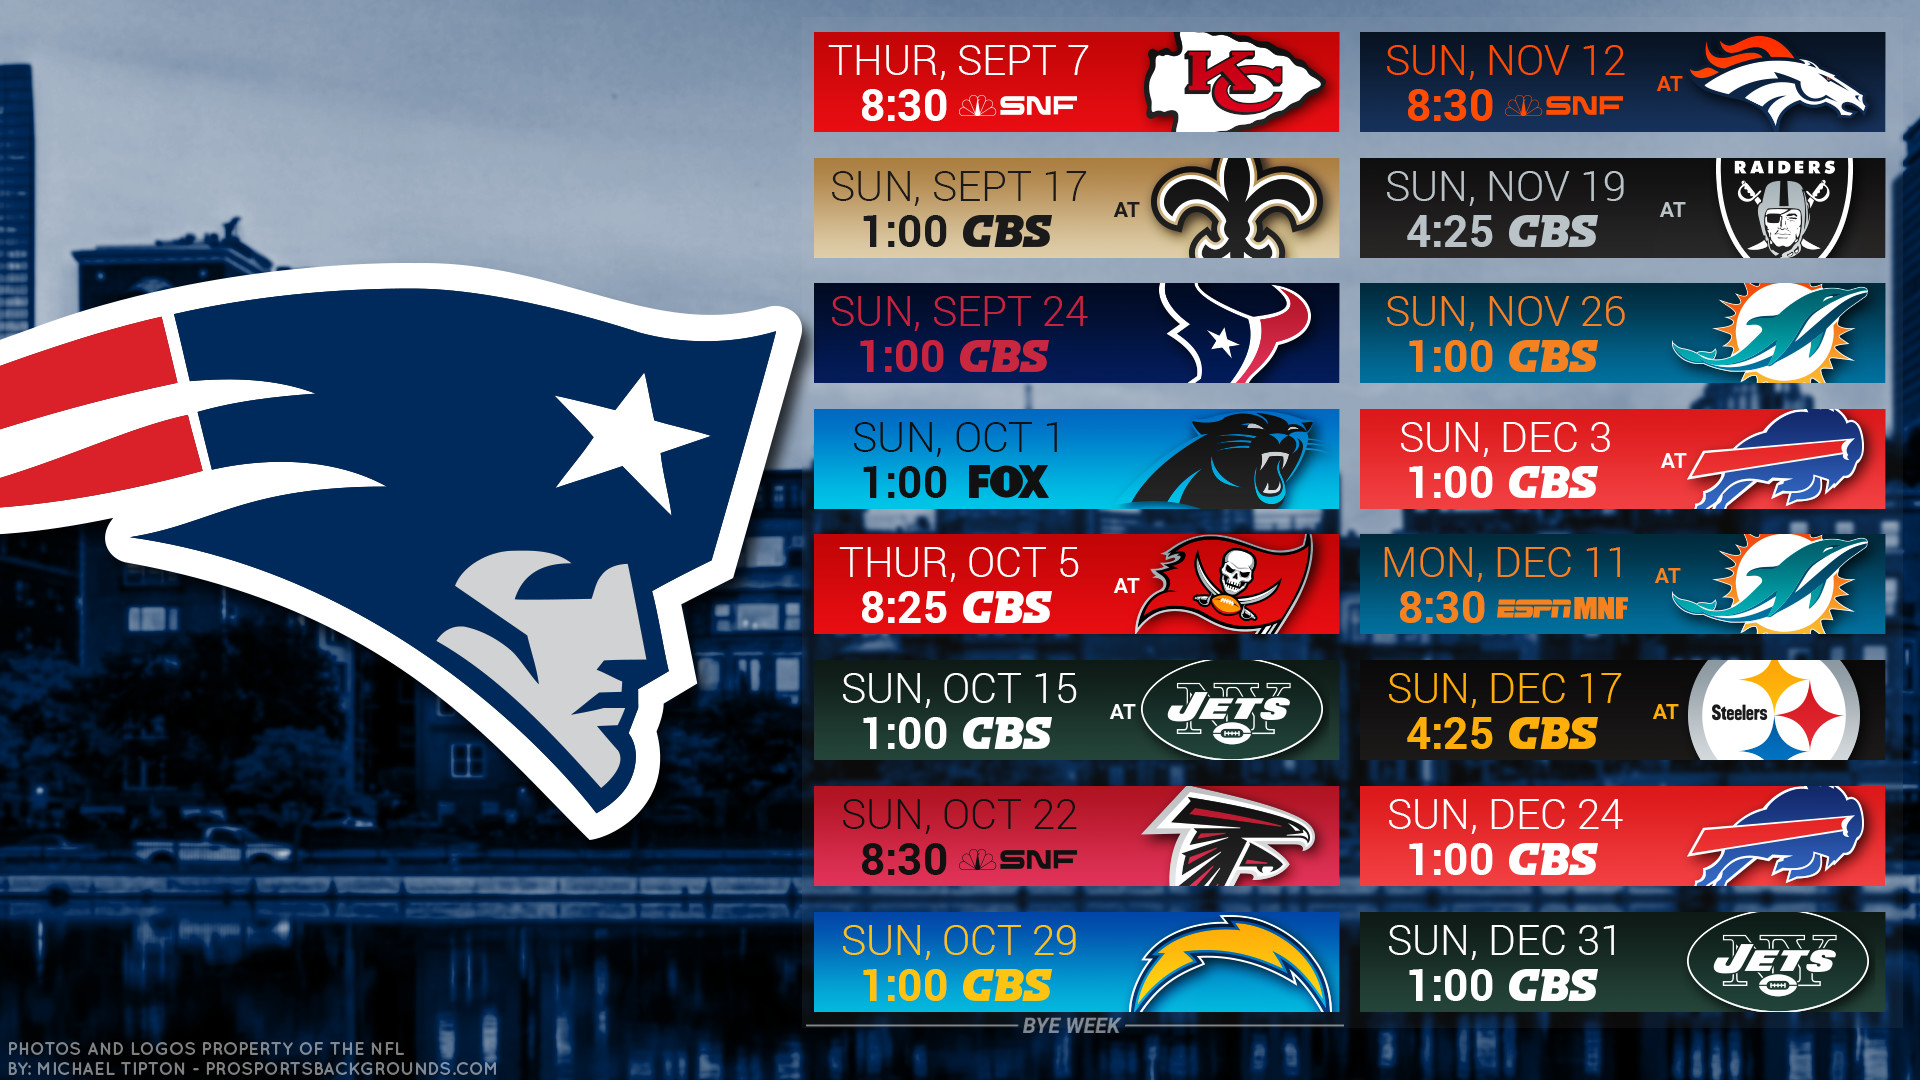 New England Patriots 2017 Schedule City Football Logo - Patriots Schedule Wallpaper 2019 - HD Wallpaper